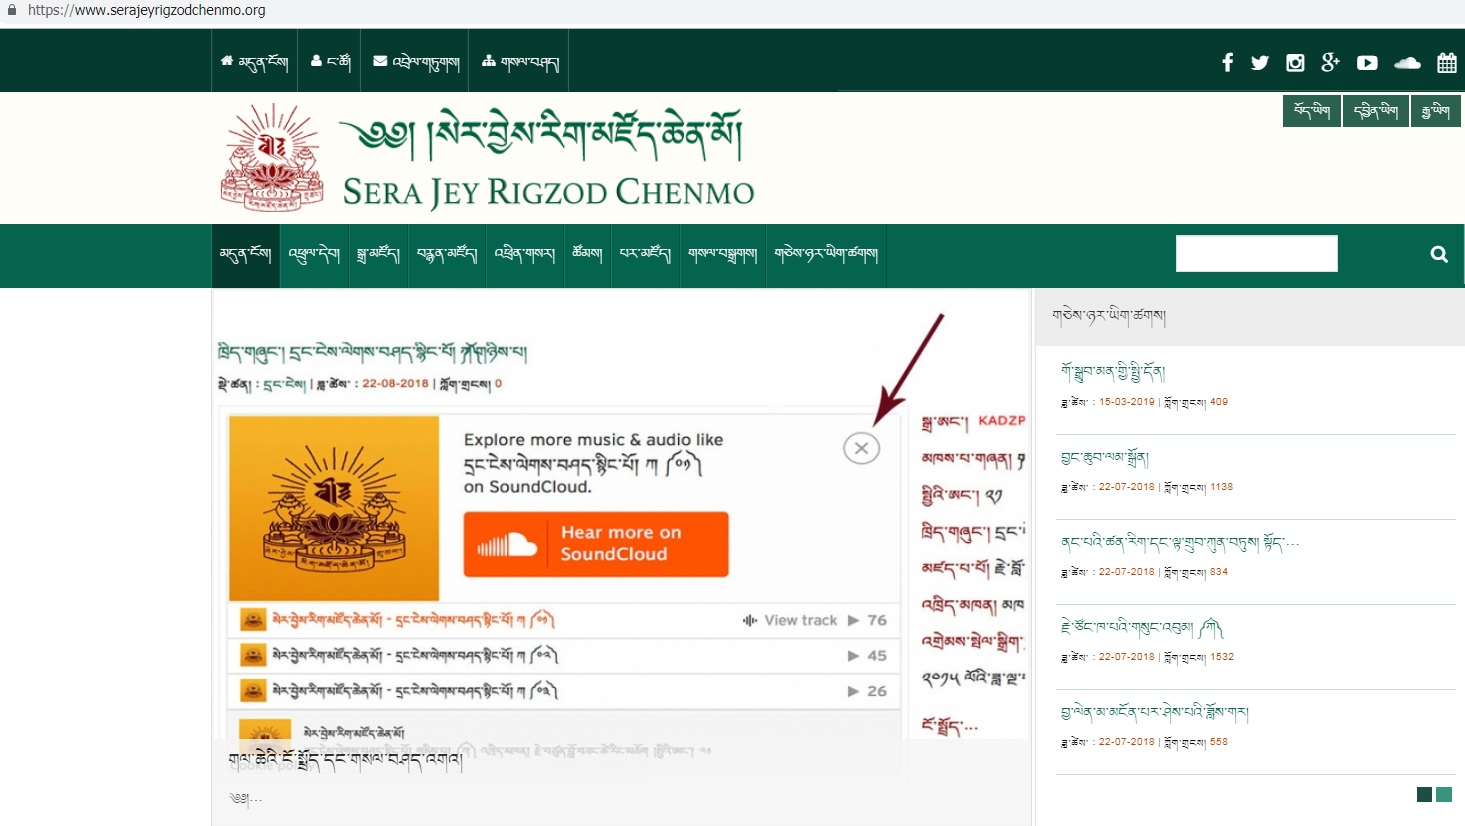 Sharing Experience A Tibetan Web Designer Tibetan Magazine For Tibet News Issues A paste is information that has been published to a publicly facing website designed to share content and is often an early indicator of a data breach. sharing experience a tibetan web